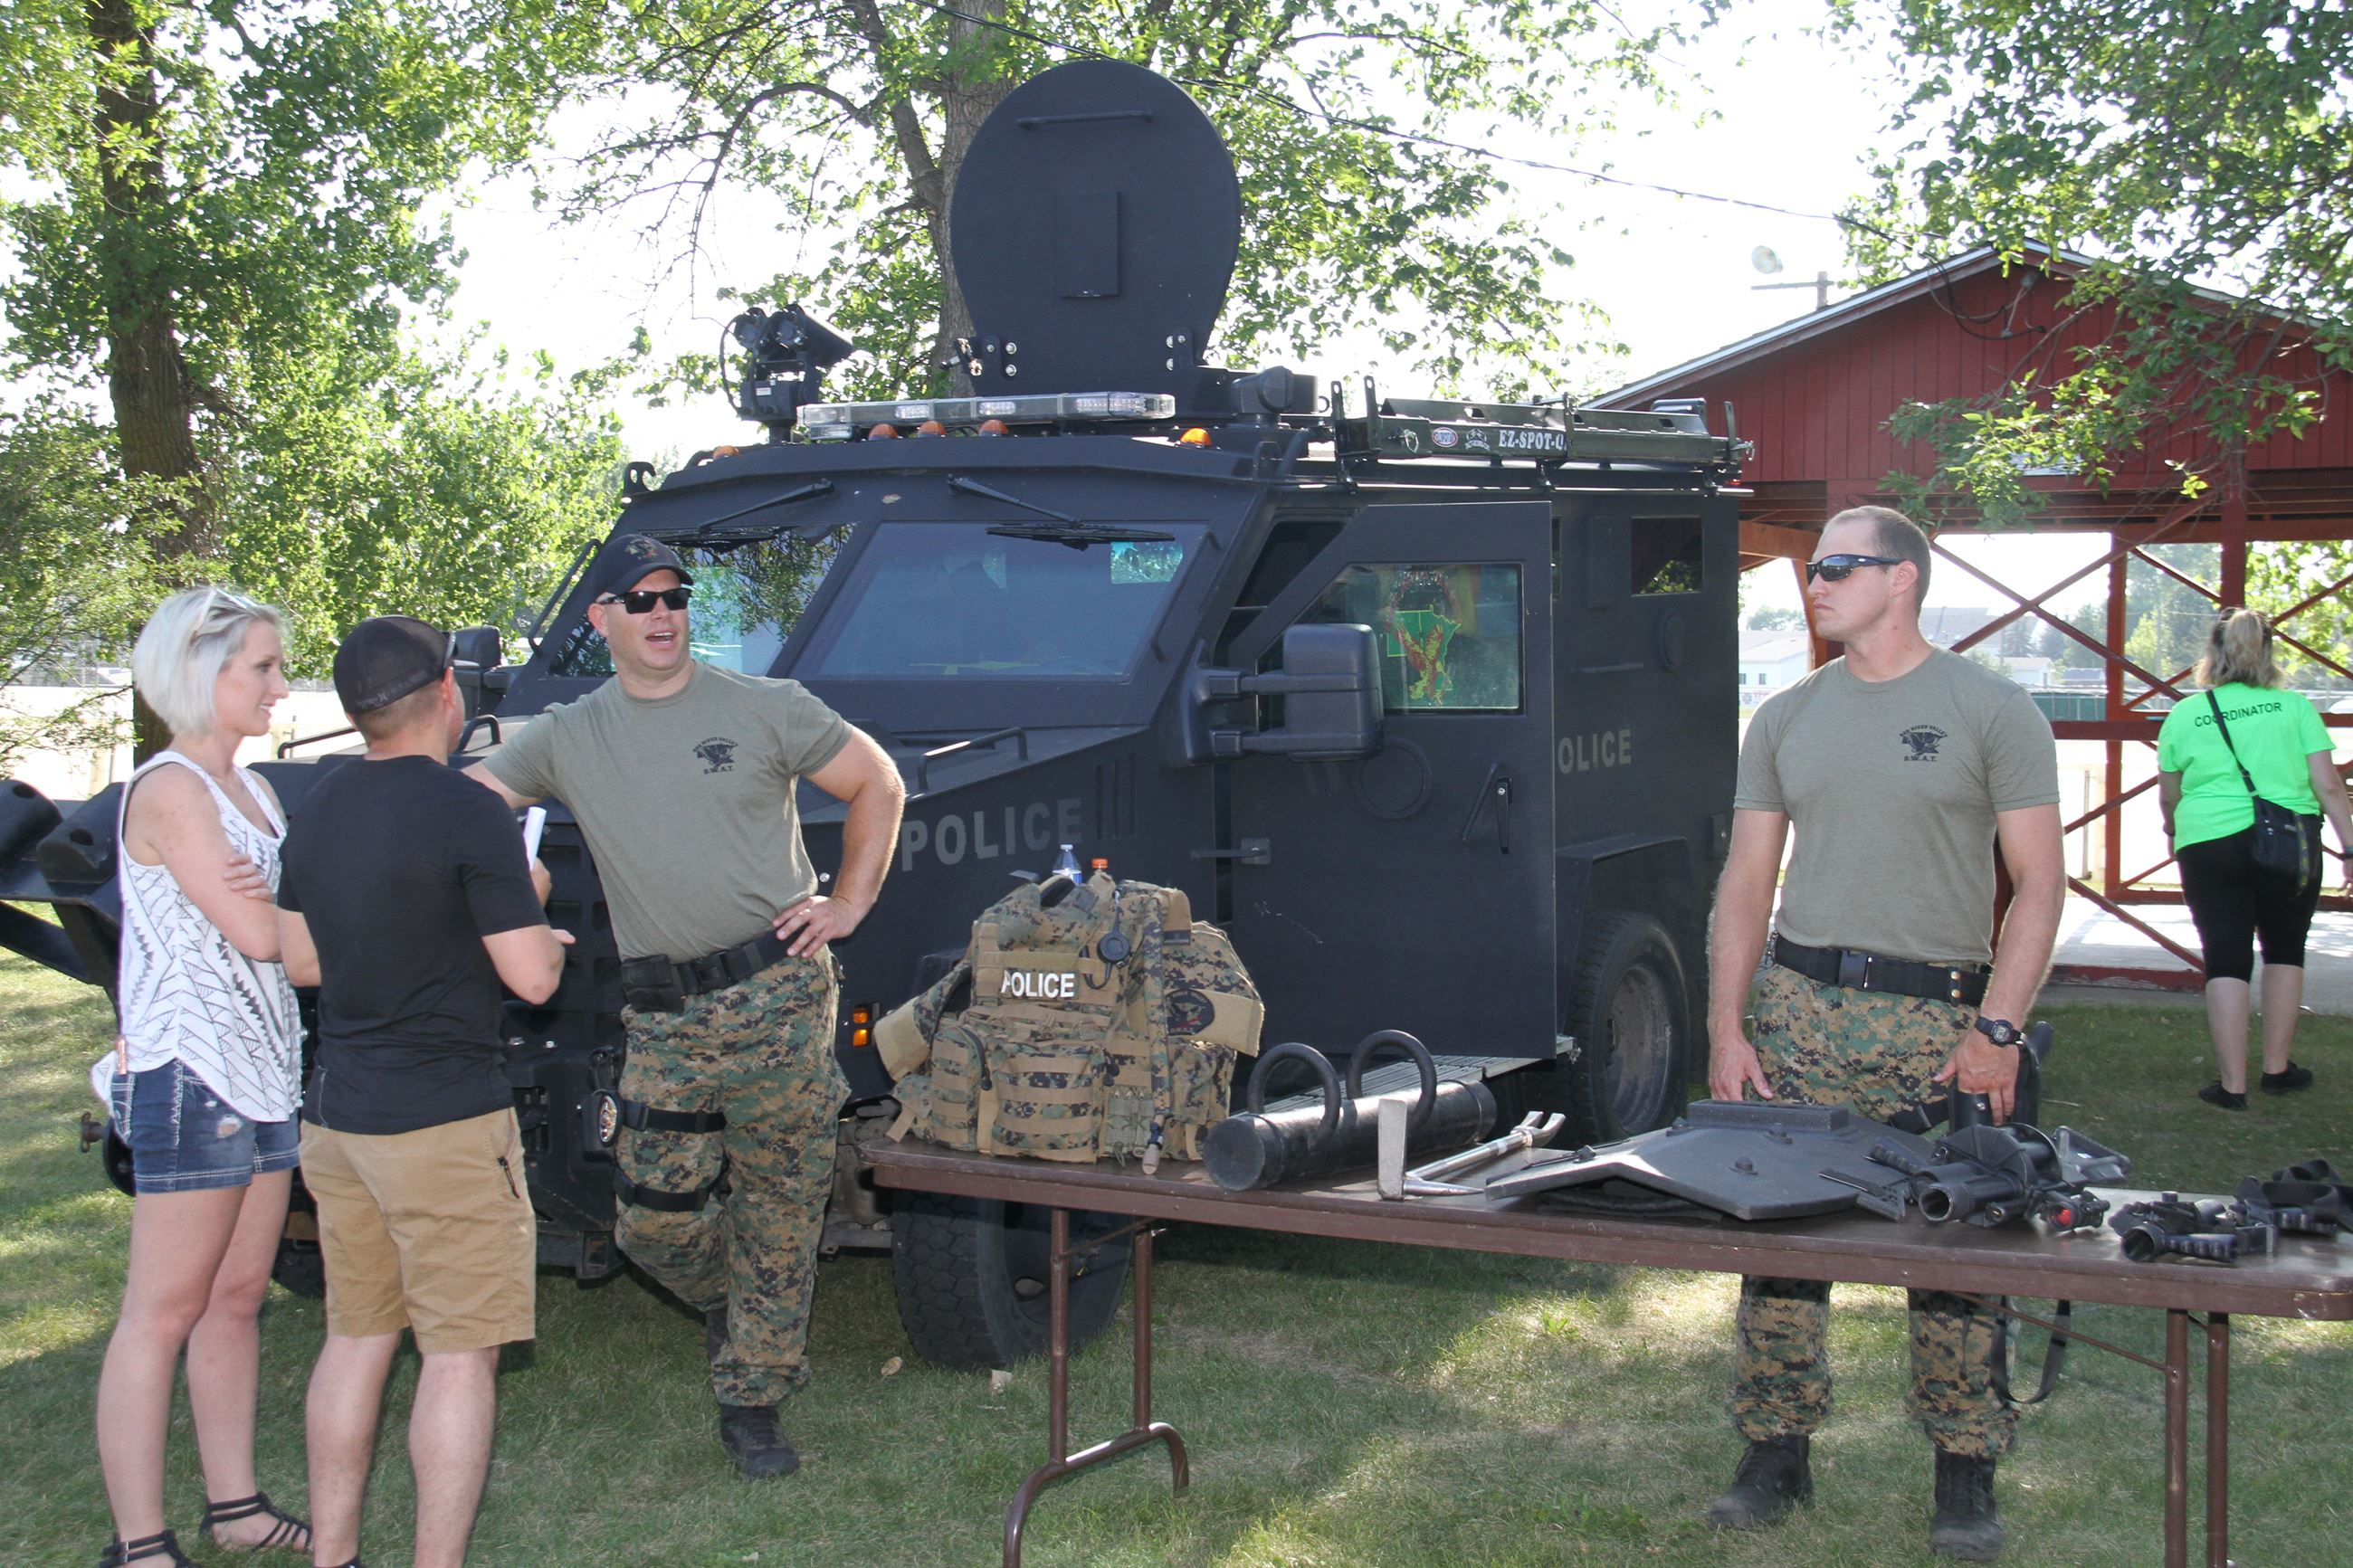 SWAT team members visit with attendees